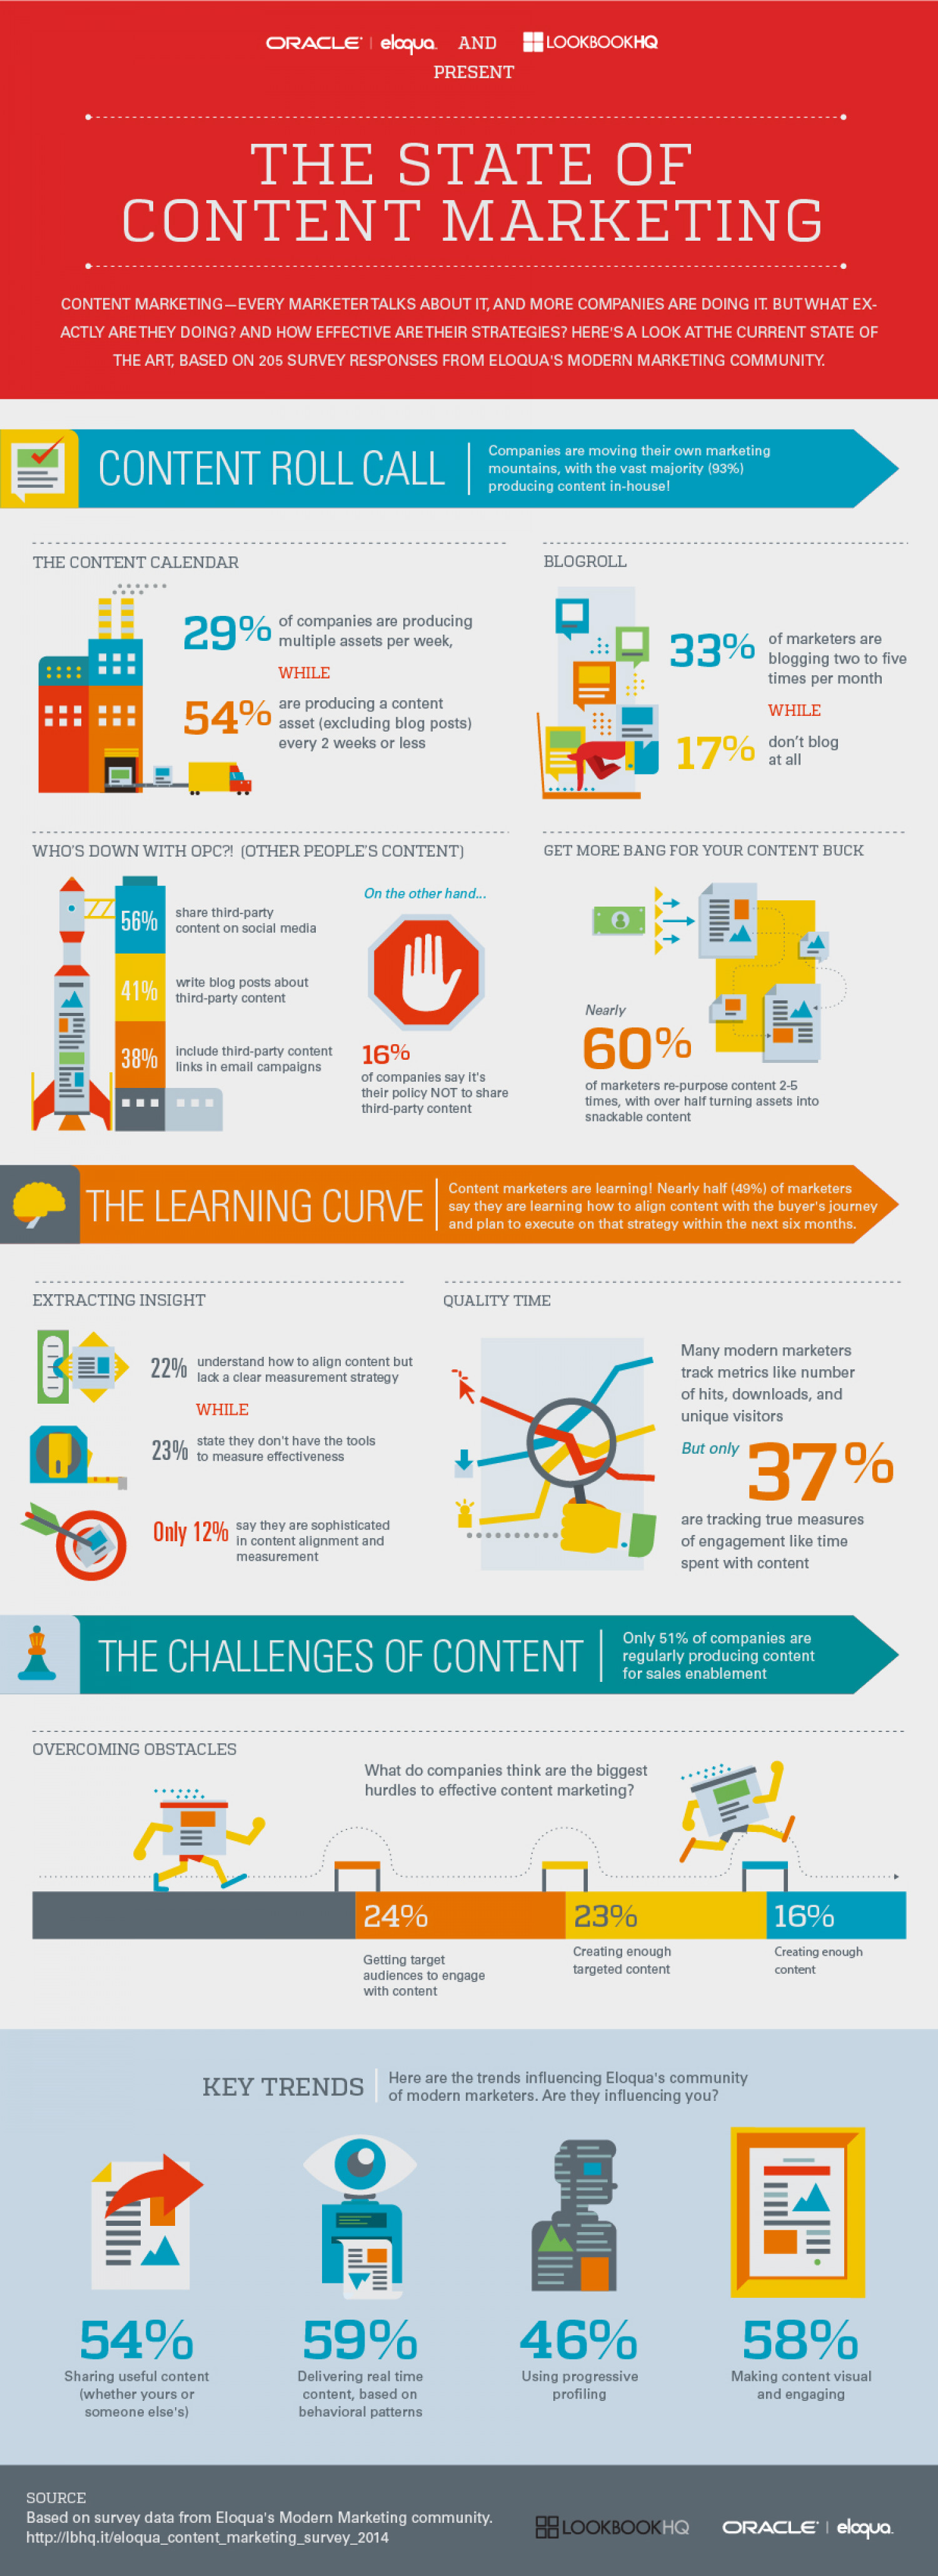 The State of Content Marketing 2014 Infographic